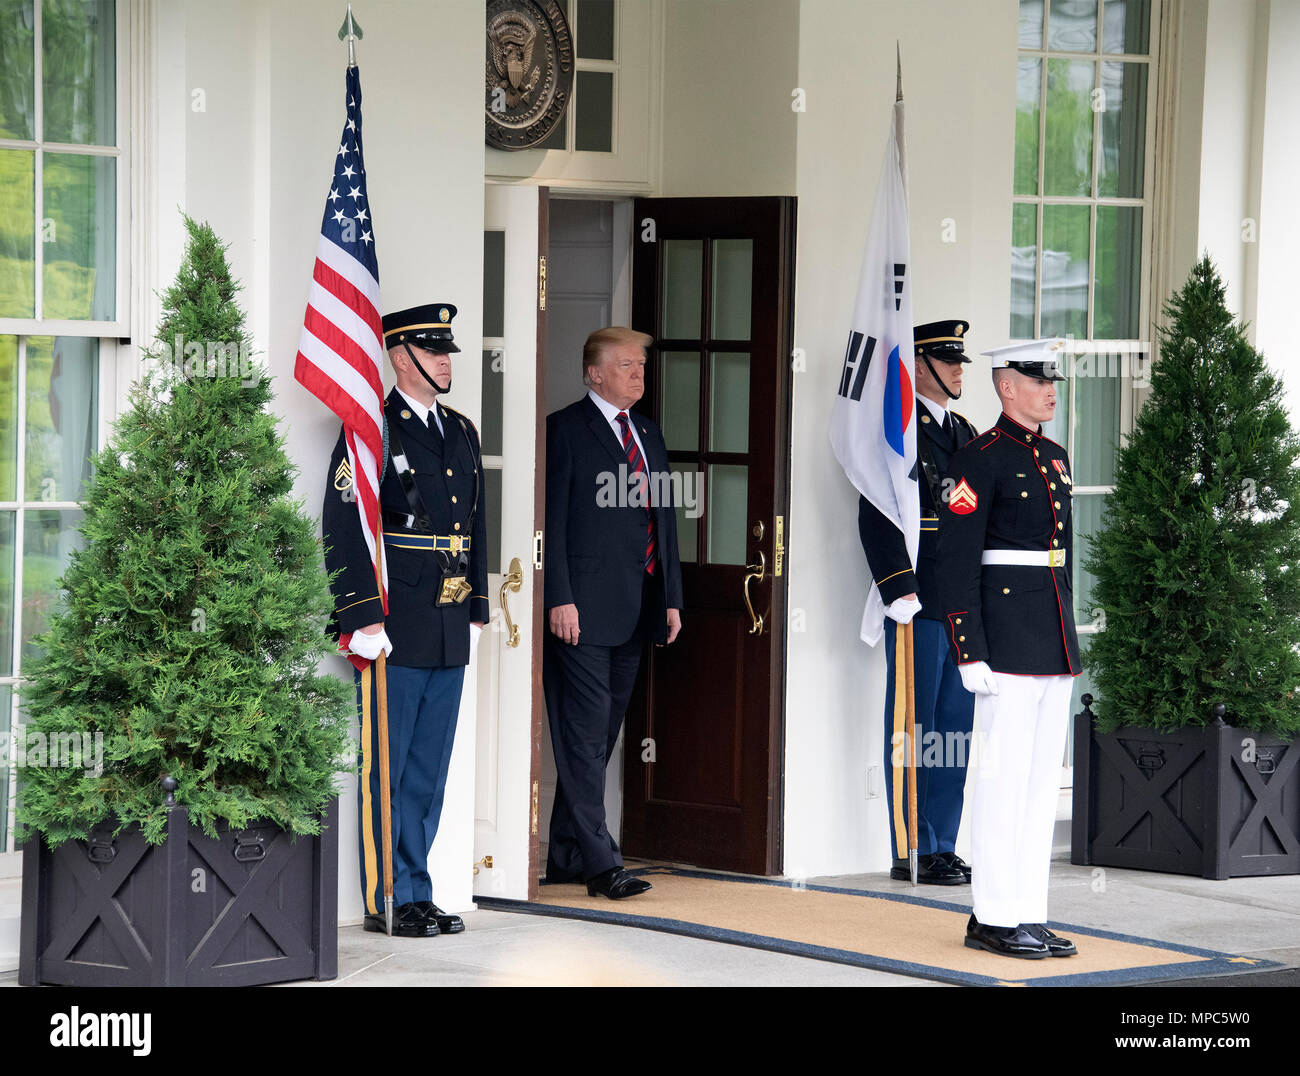 Singapore. 12th June, 2018. United States President Donald J. Trump emerges from the White House to welcome President Moon Jae-in of South Korea for talks at the White House in Washington, DC on Tuesday, May 22, 2018. The two leaders are meeting ahead of President Trump's scheduled summit with Kim Jung-un of North Korea which is tentatively scheduled for June 12, 2018 in Singapore. Credit: Ron Sachs/CNP | usage worldwide Credit: dpa/Alamy Live News - Stock Image